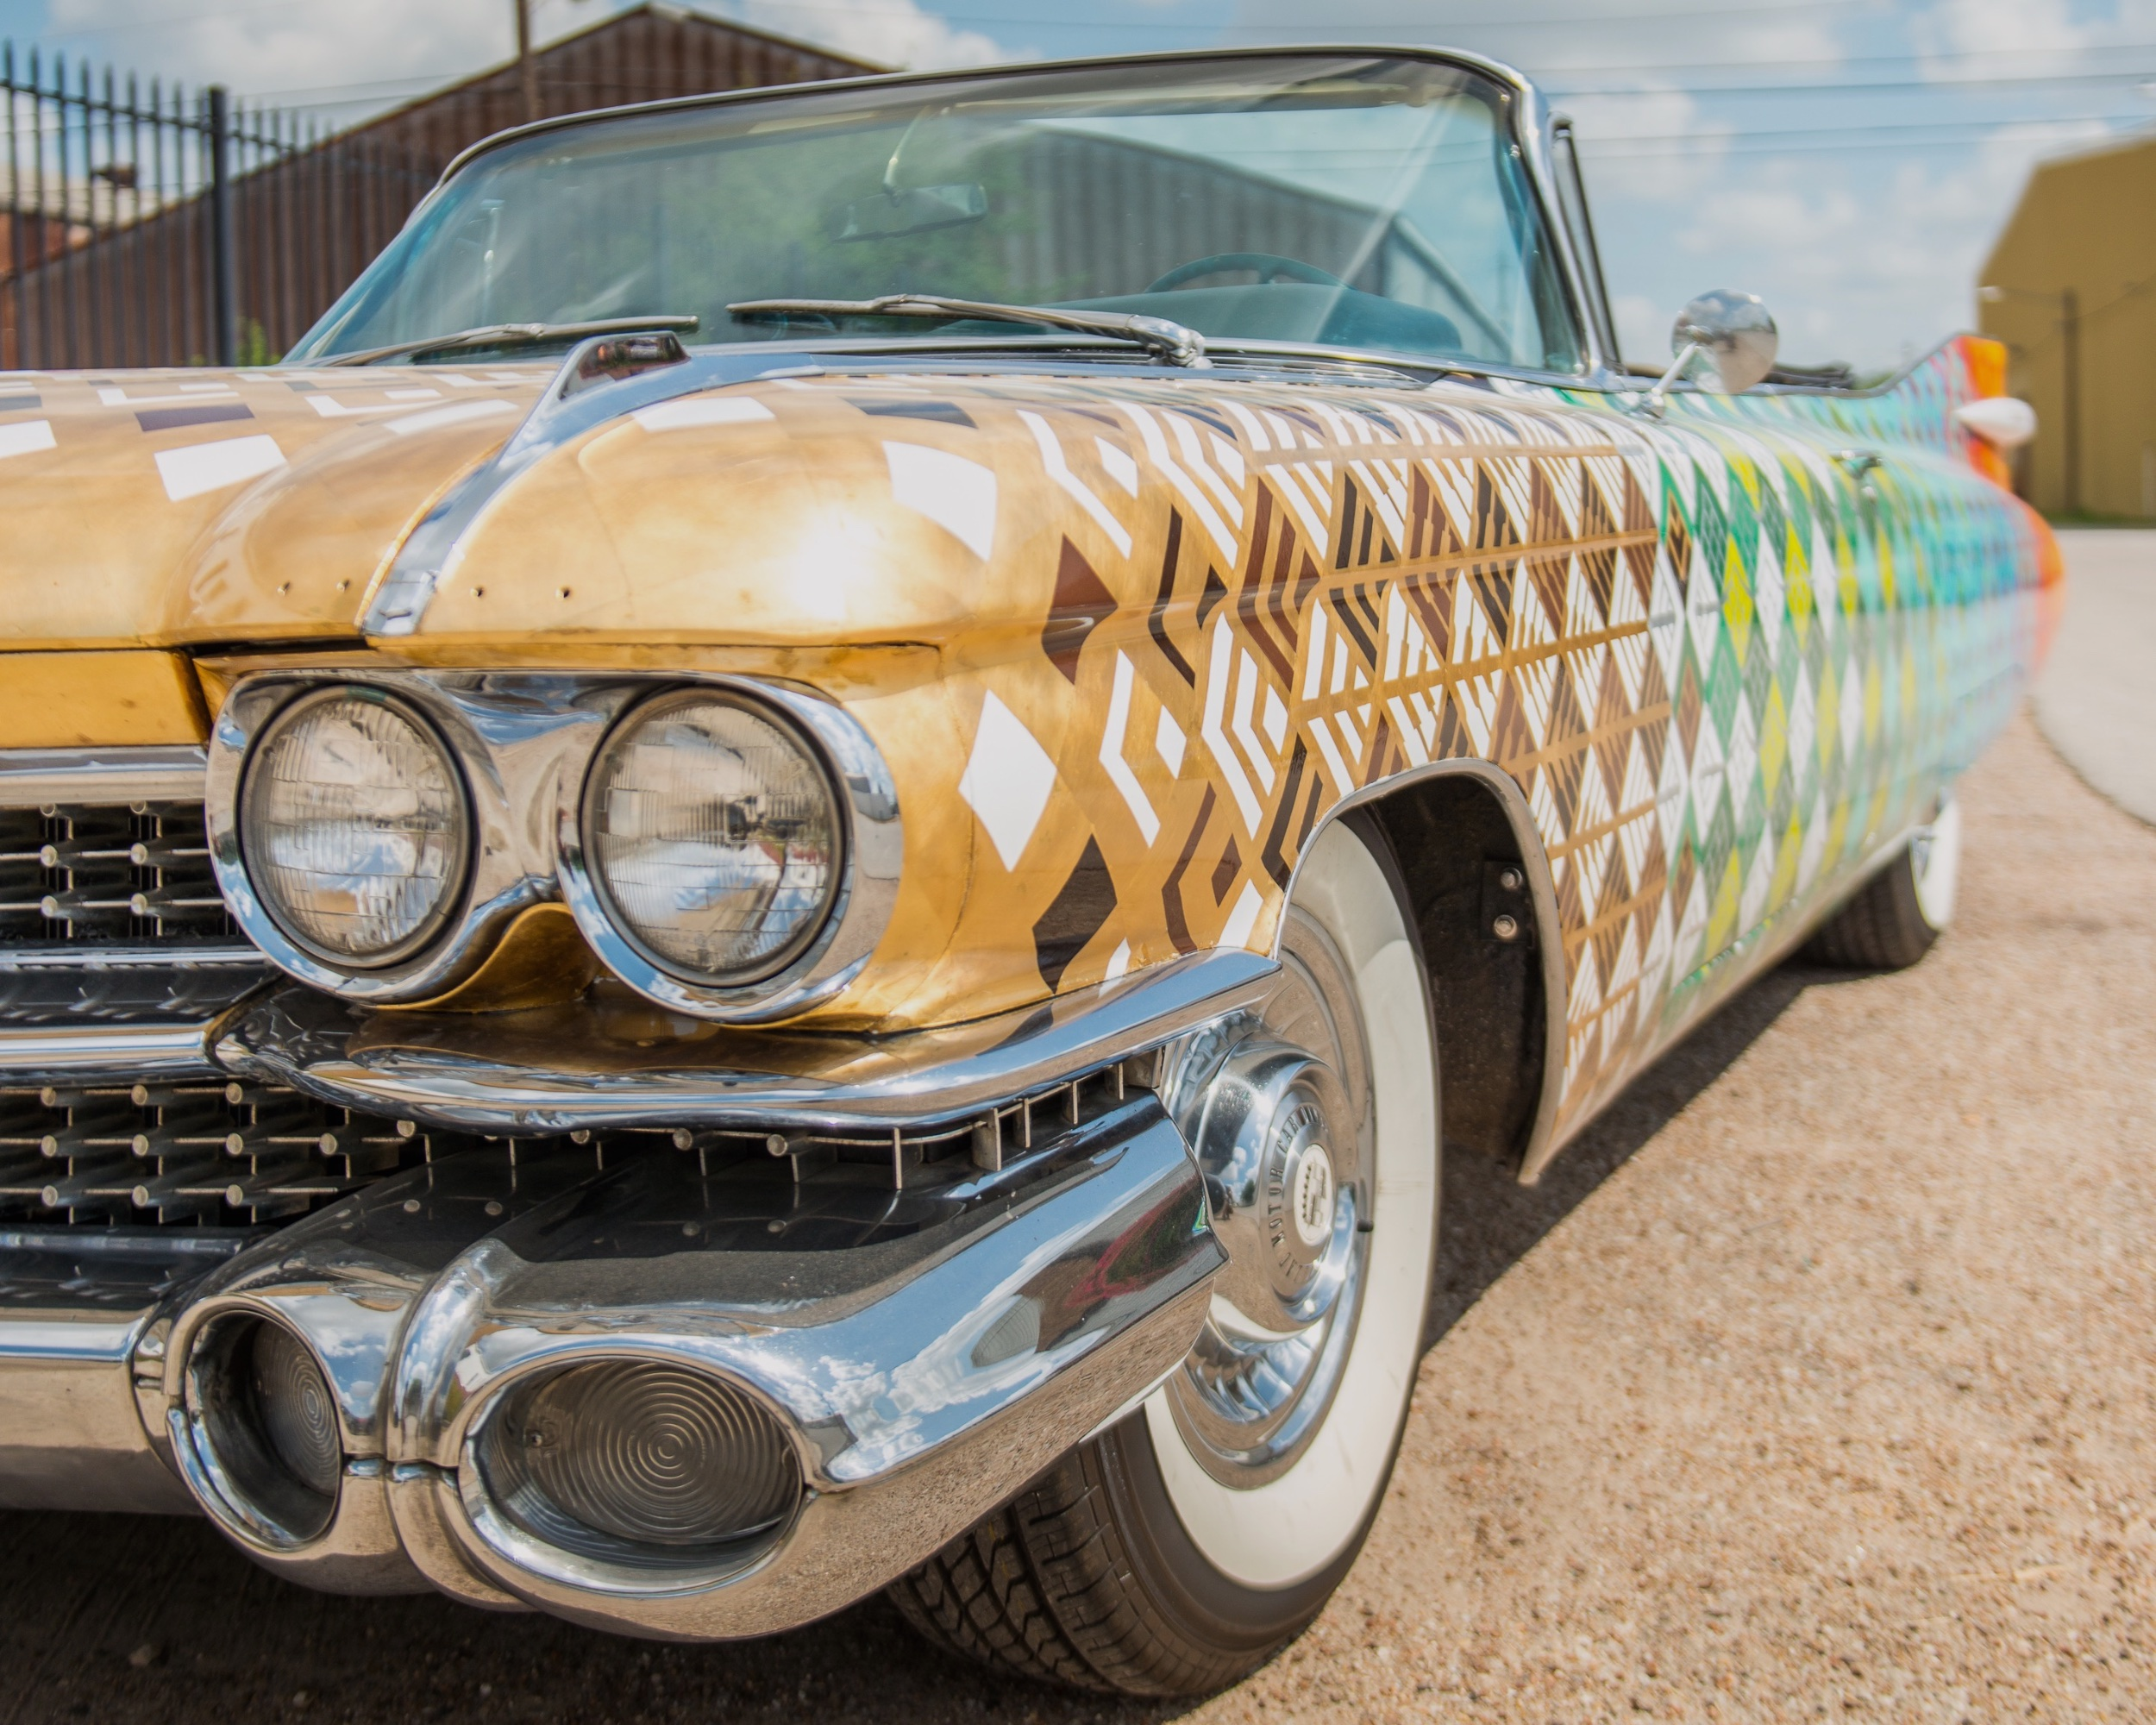 Saint Arnold Brewing Company - Art Car Fleet - Houstonm, TX 072015